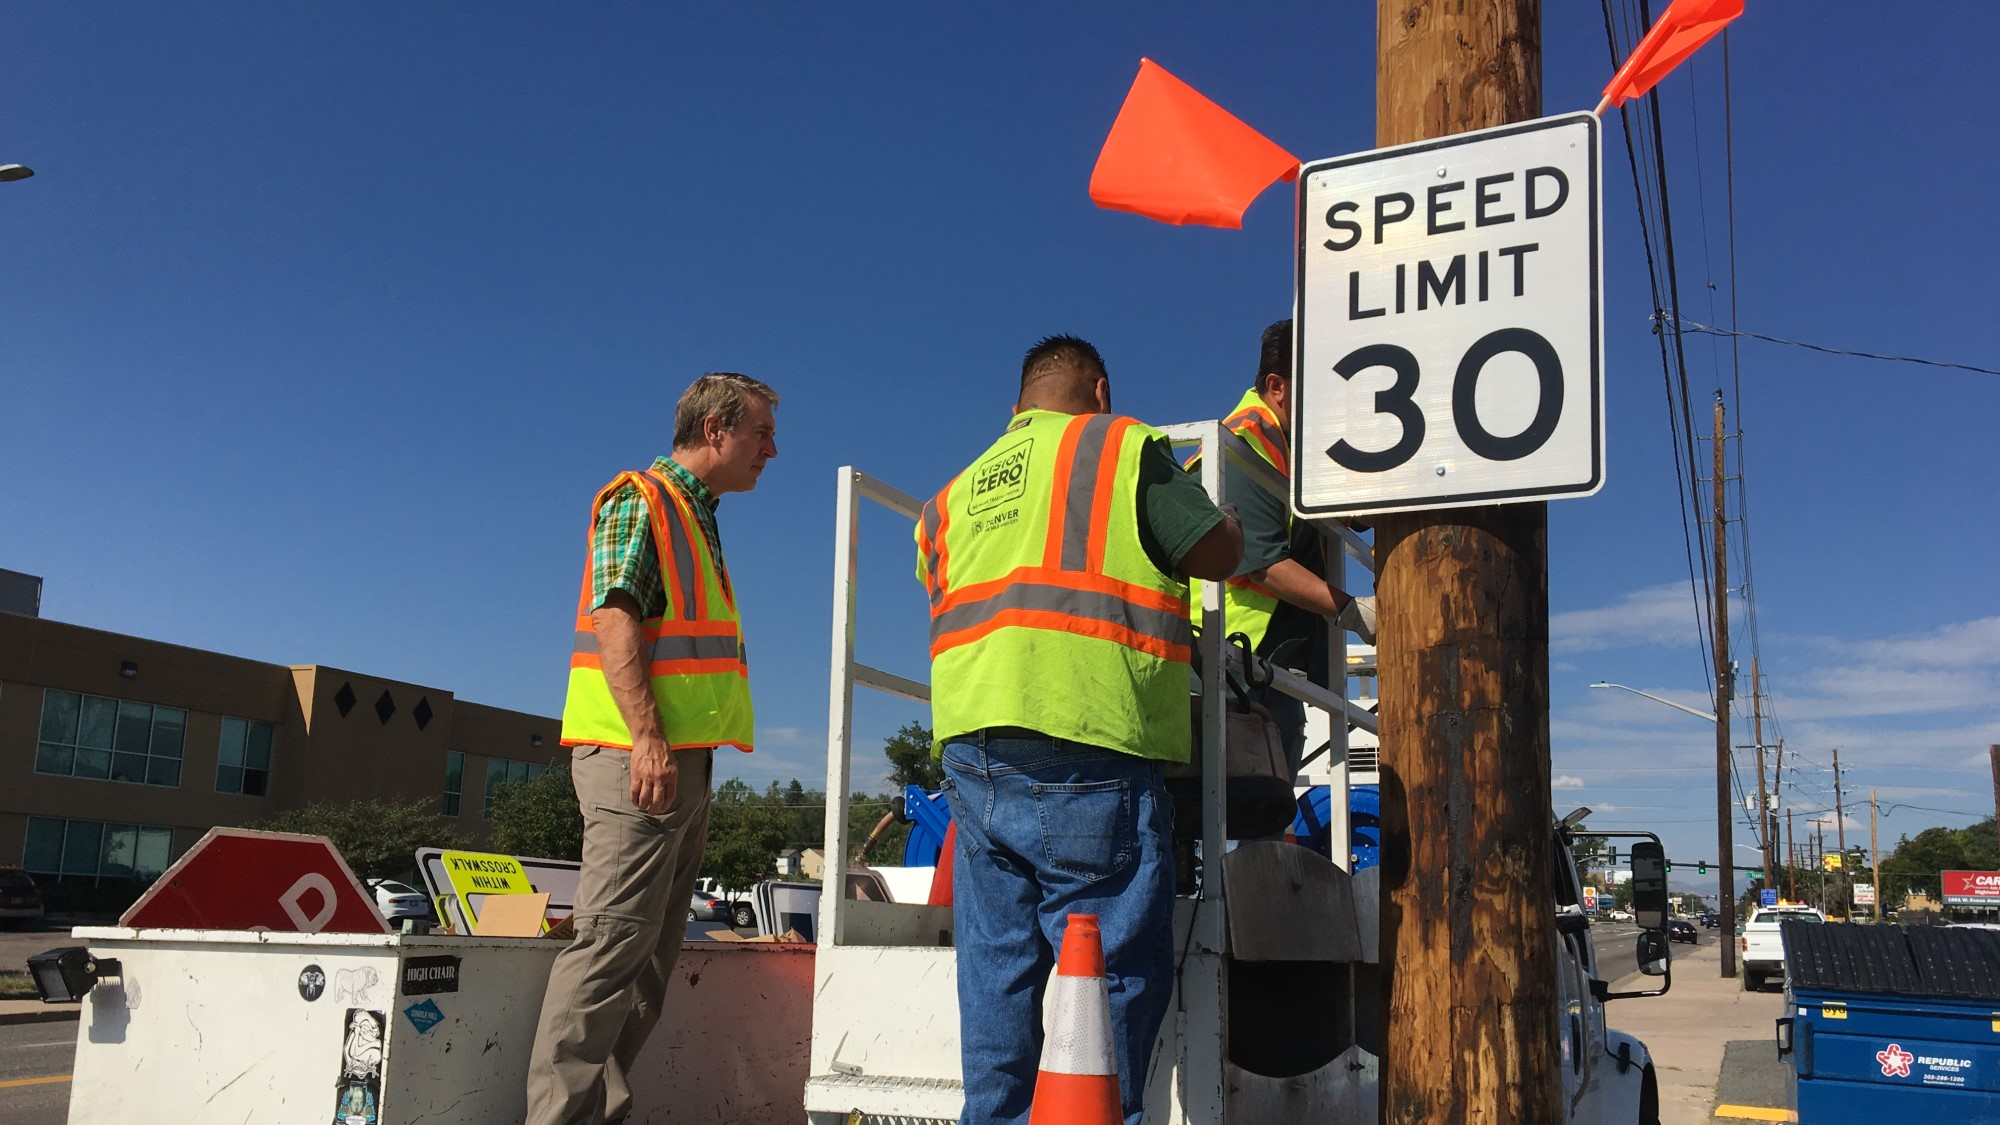 crews install 30 mile per hour speed limit signs and flags to alert drivers